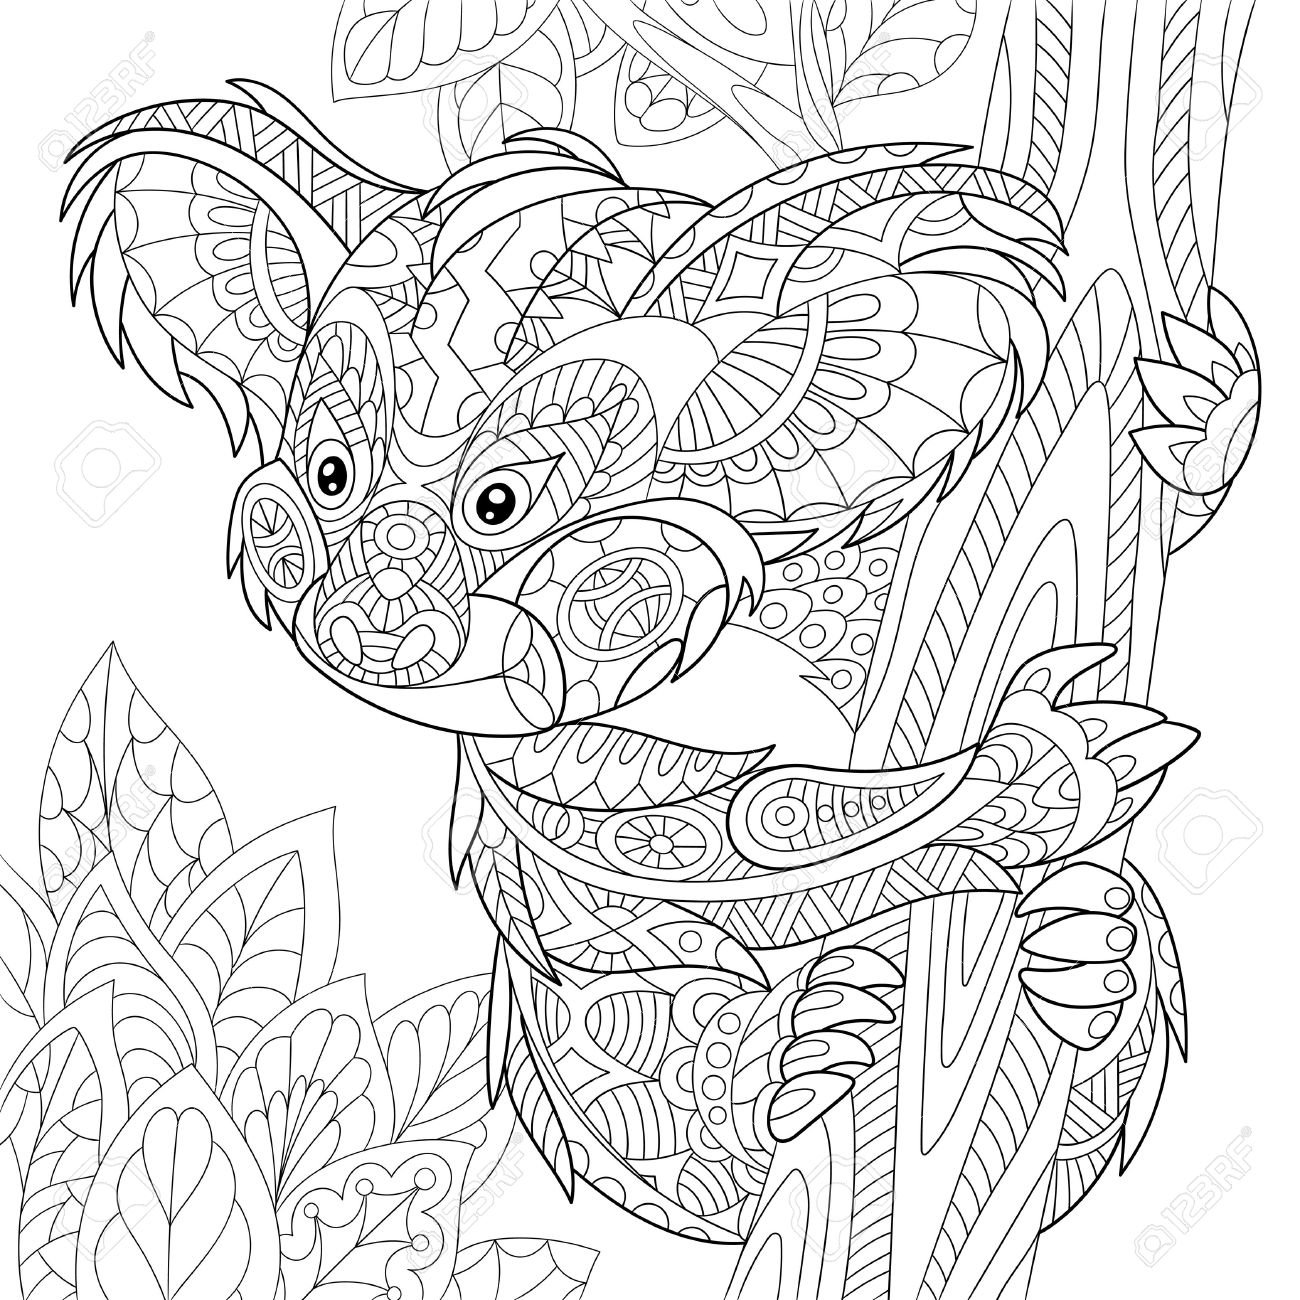 stylized cartoon koala bear sitting among tree leaves hand drawn